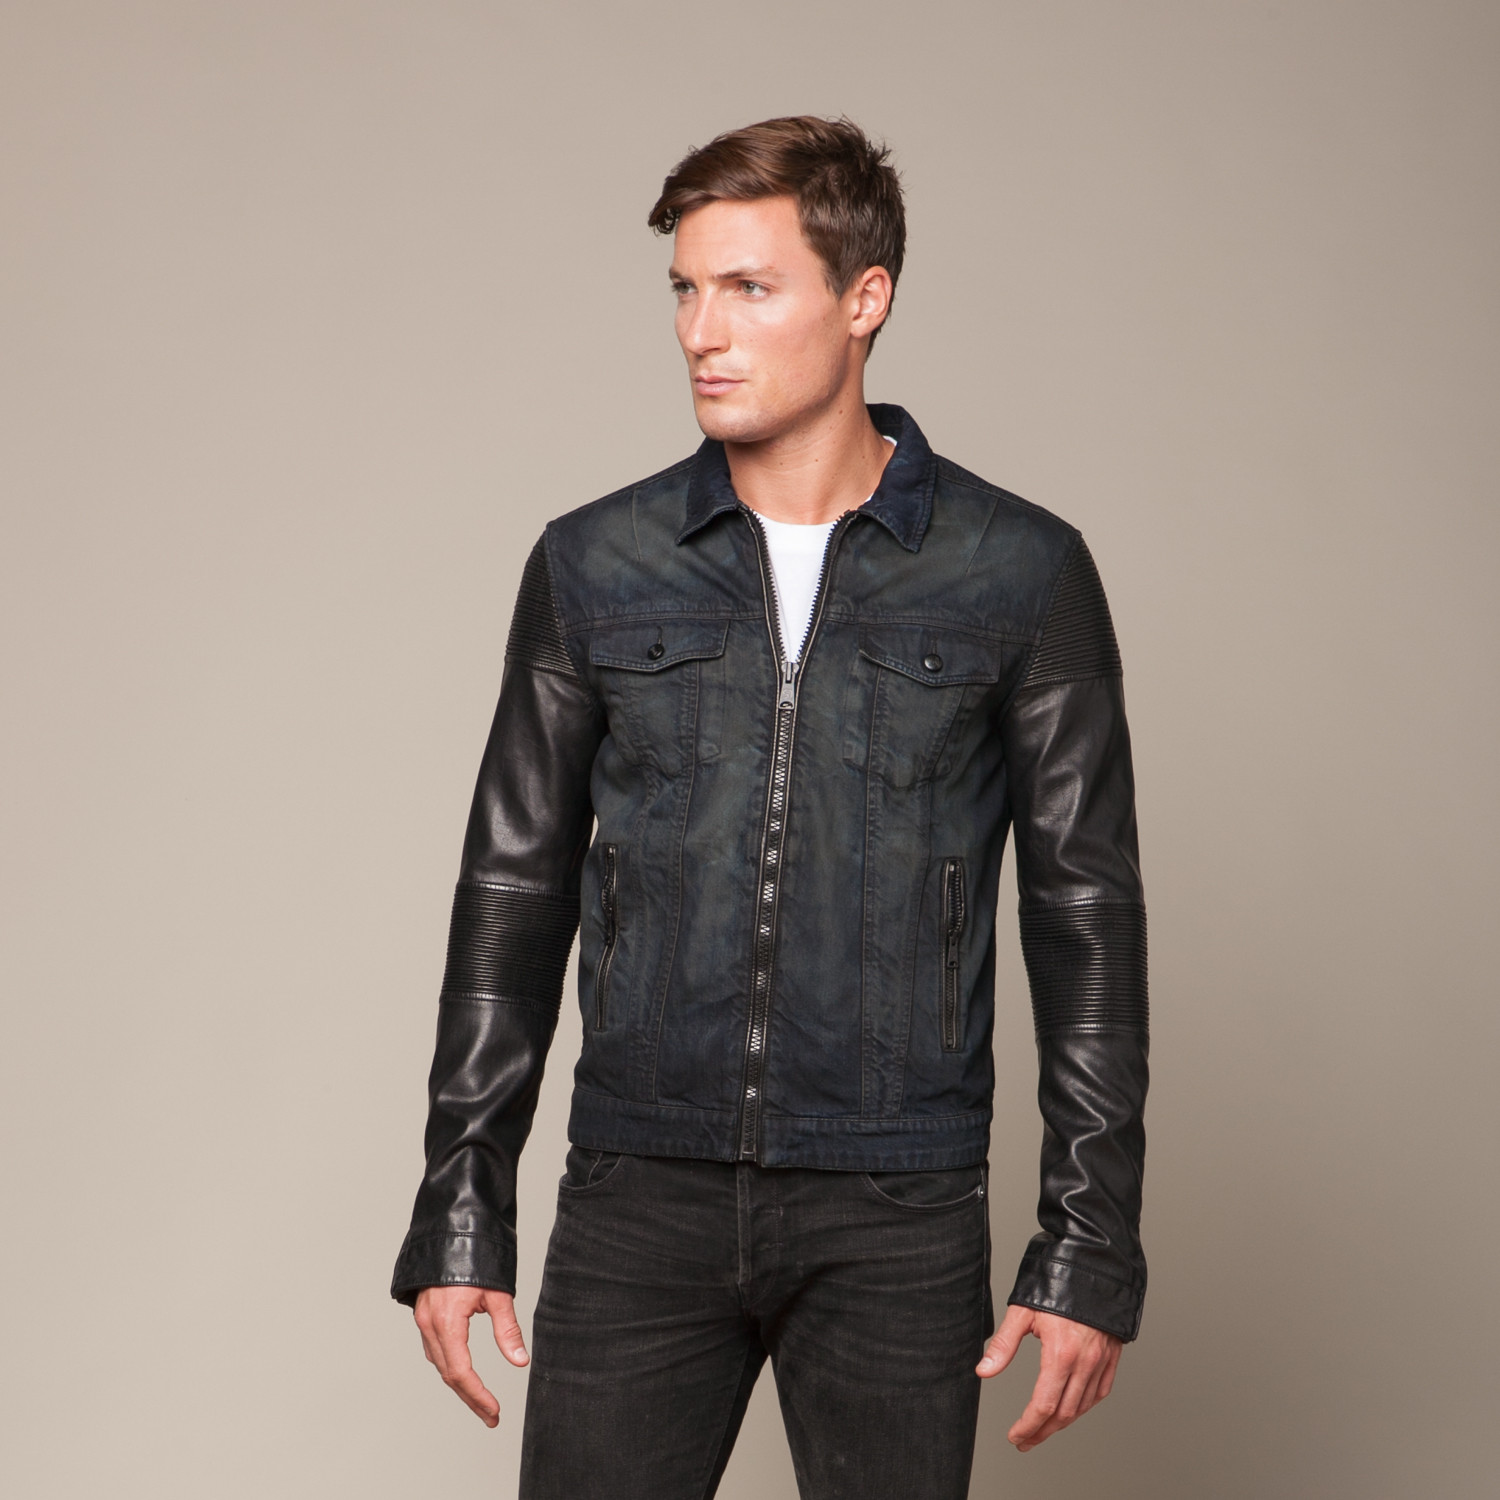 bee2474a1 Rogue // Denim Jacket + Faux Leather Sleeves // Black (L) - Rogue ...